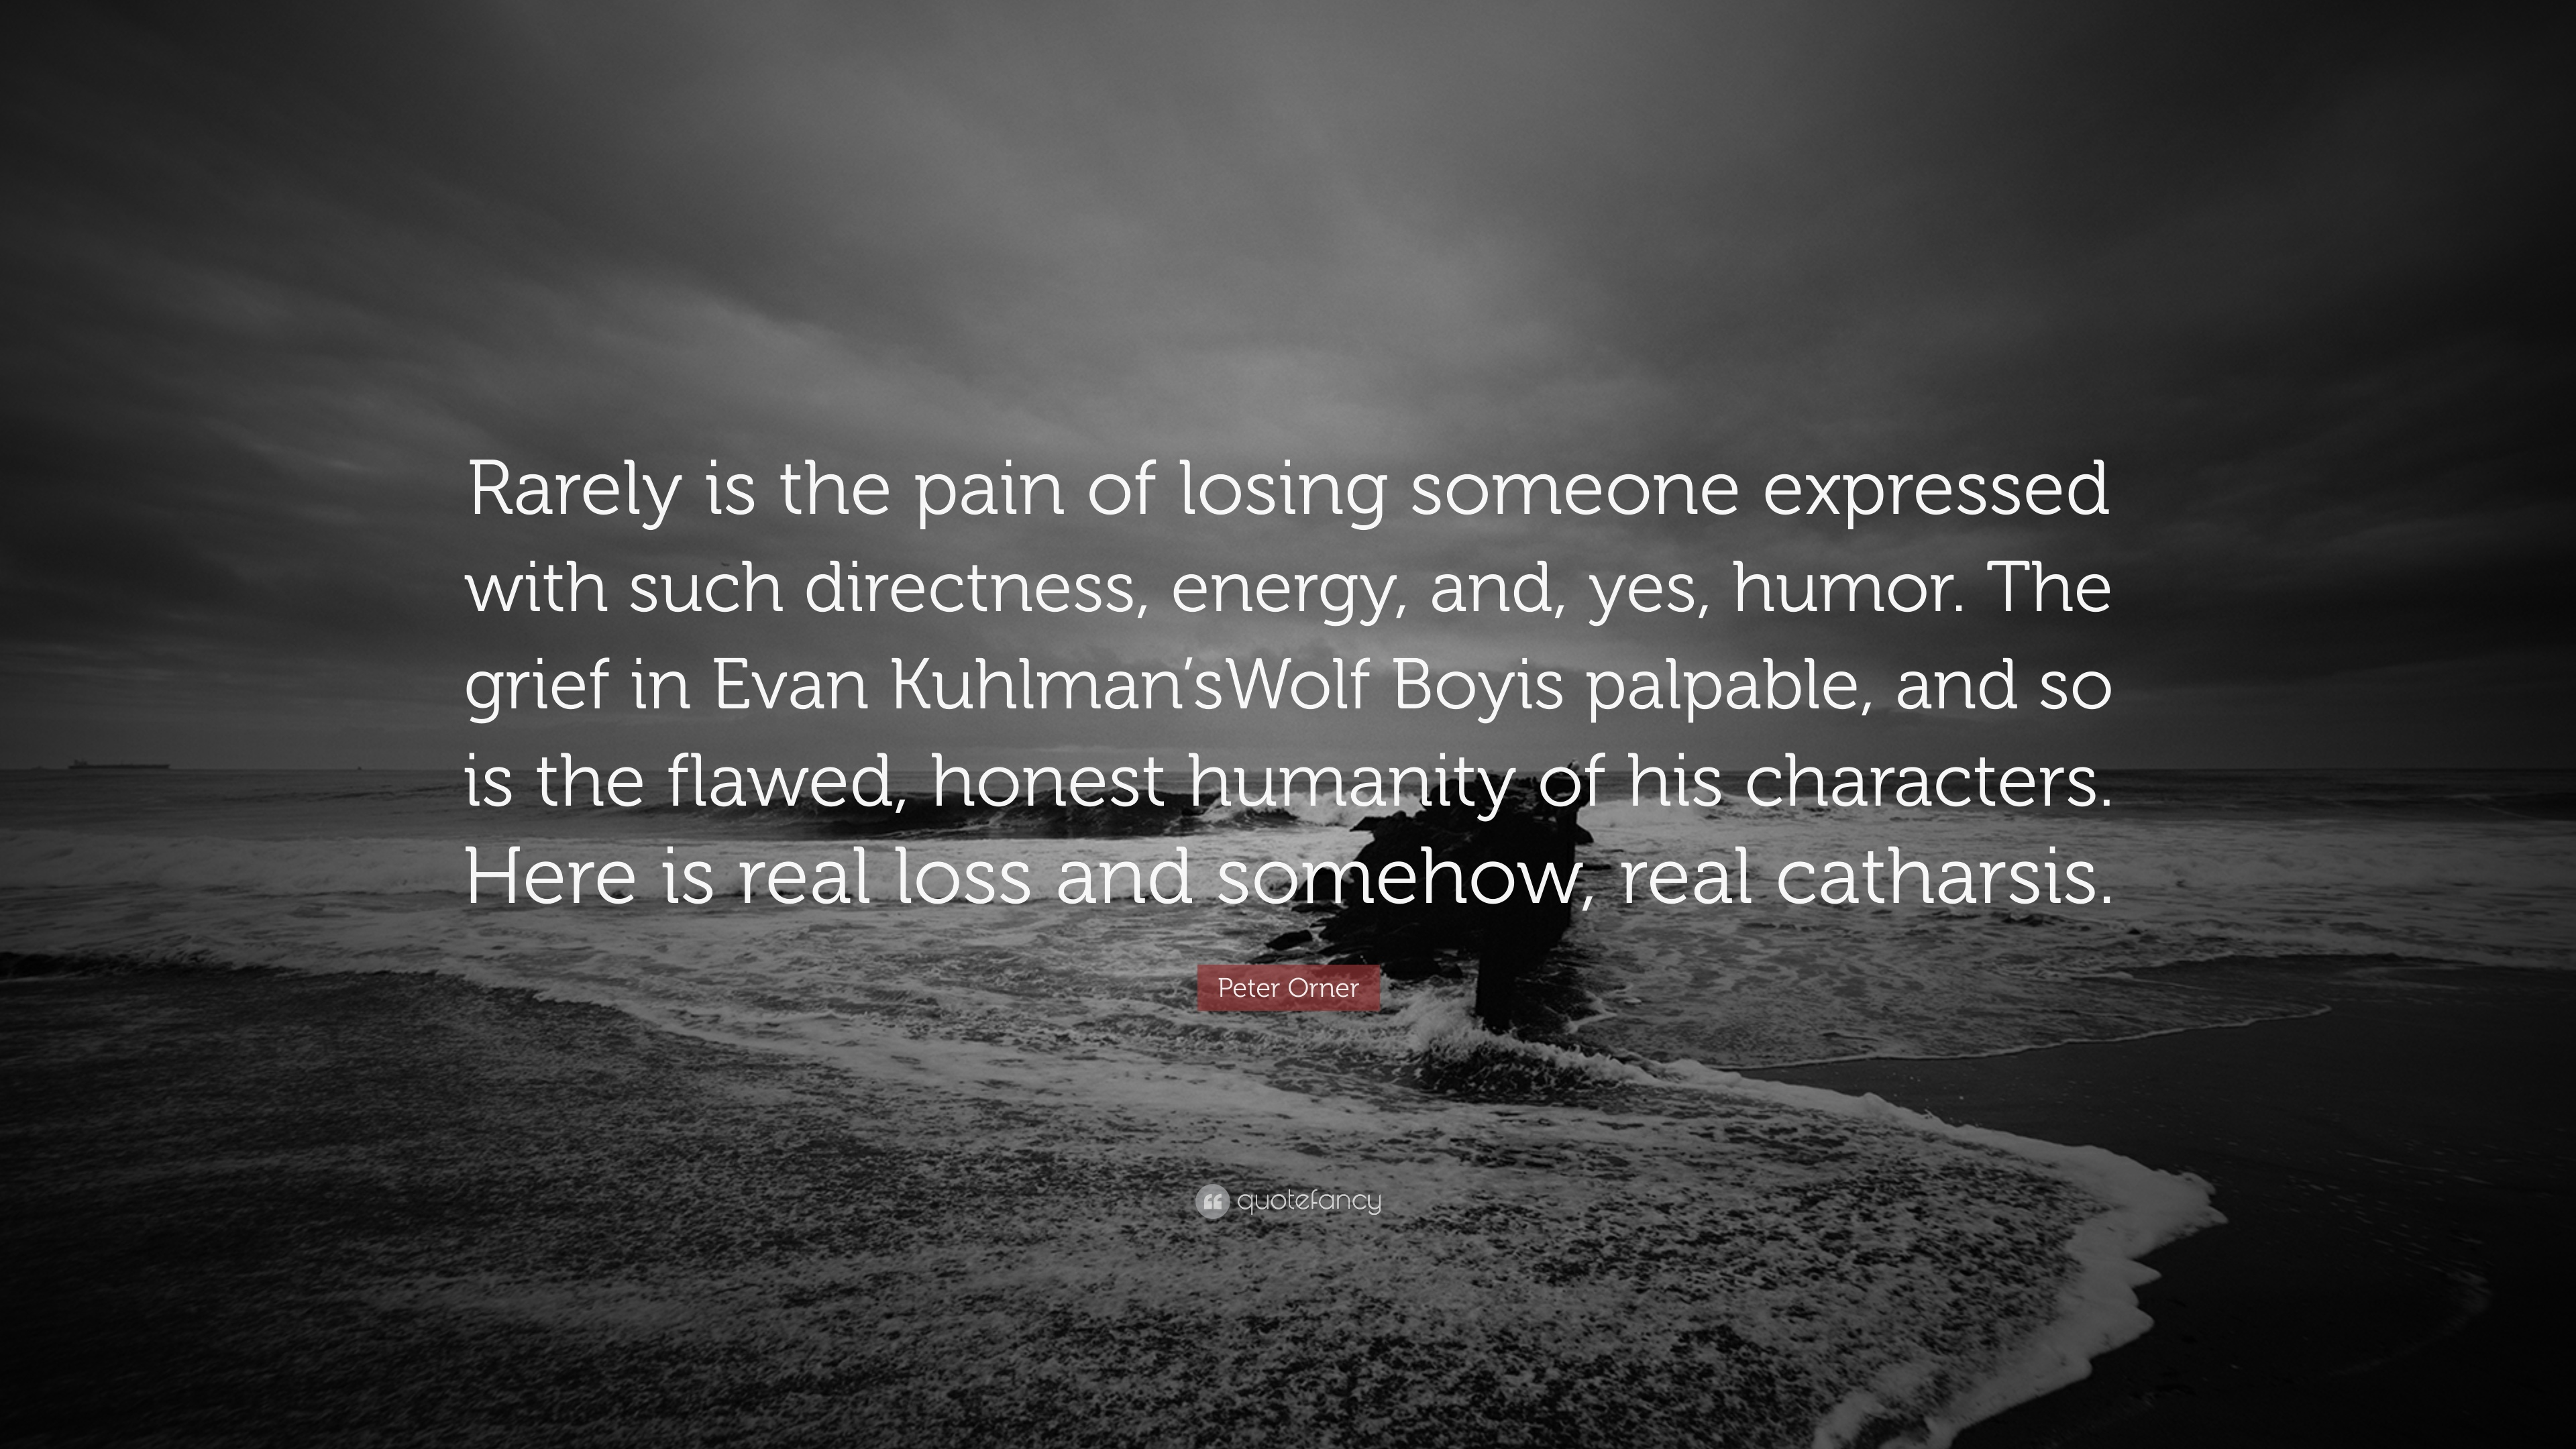 Peter Orner Quote: Rarely is the pain of losing someone